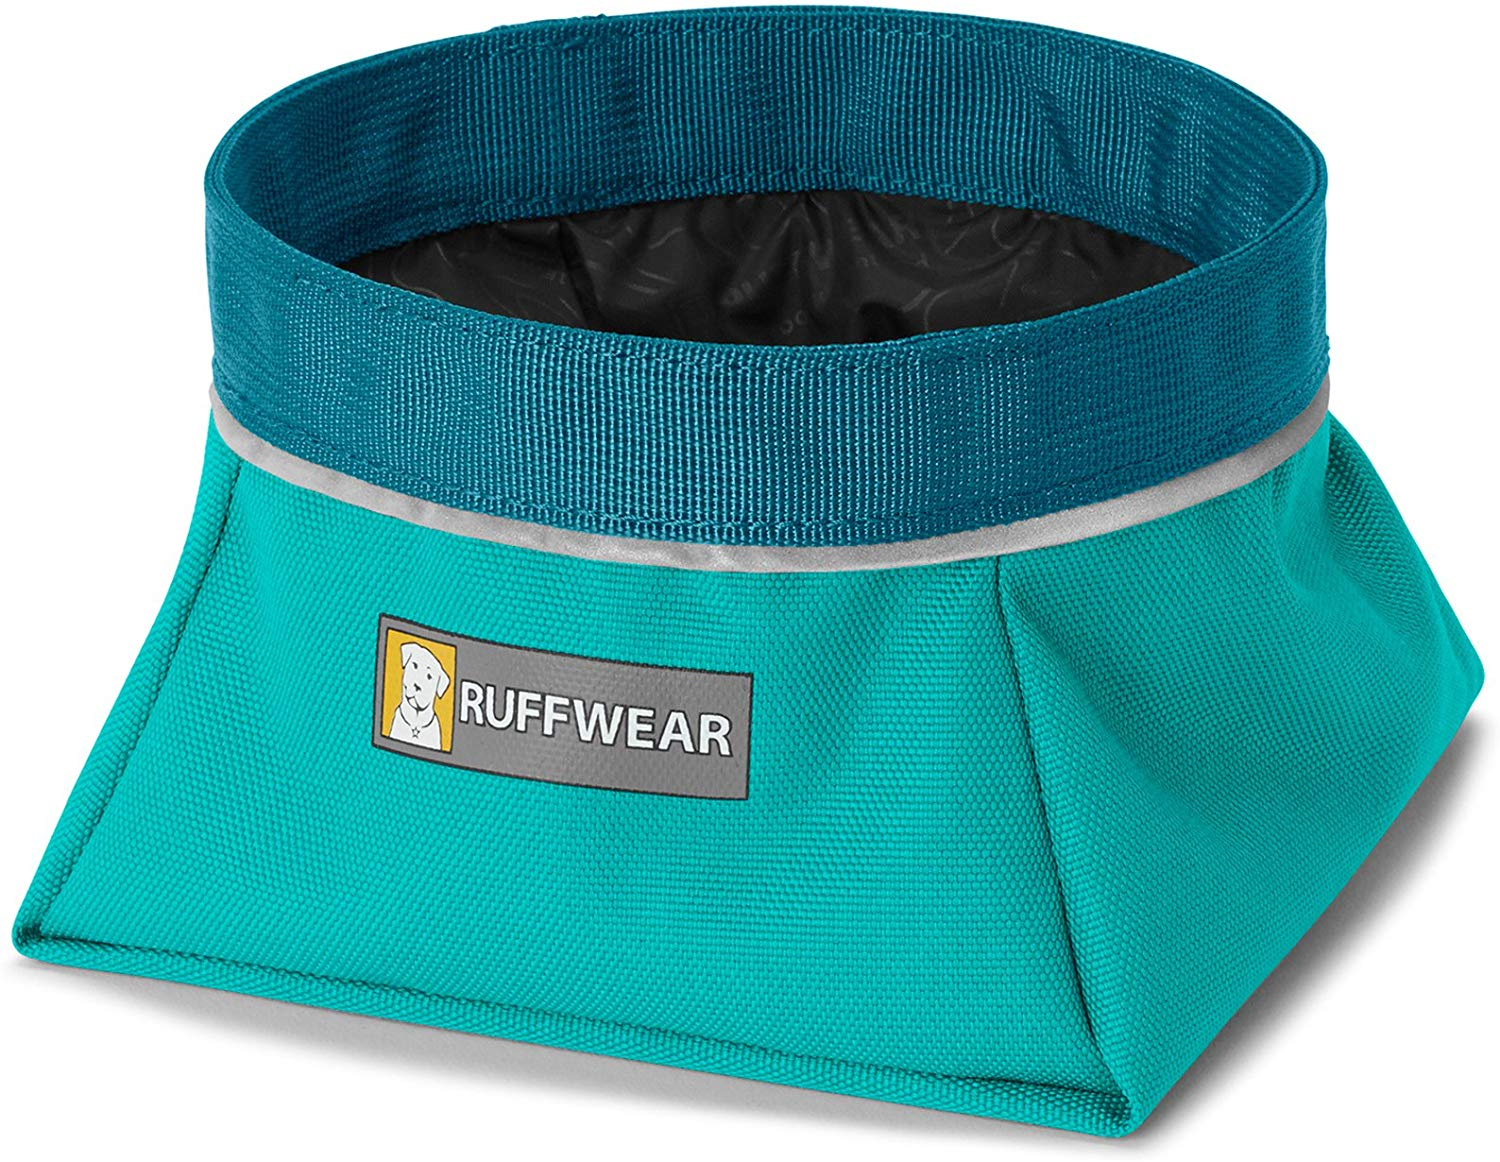 Ruffwear Quencher Food & Water Dog Bowl, Meltwater Teal, Large